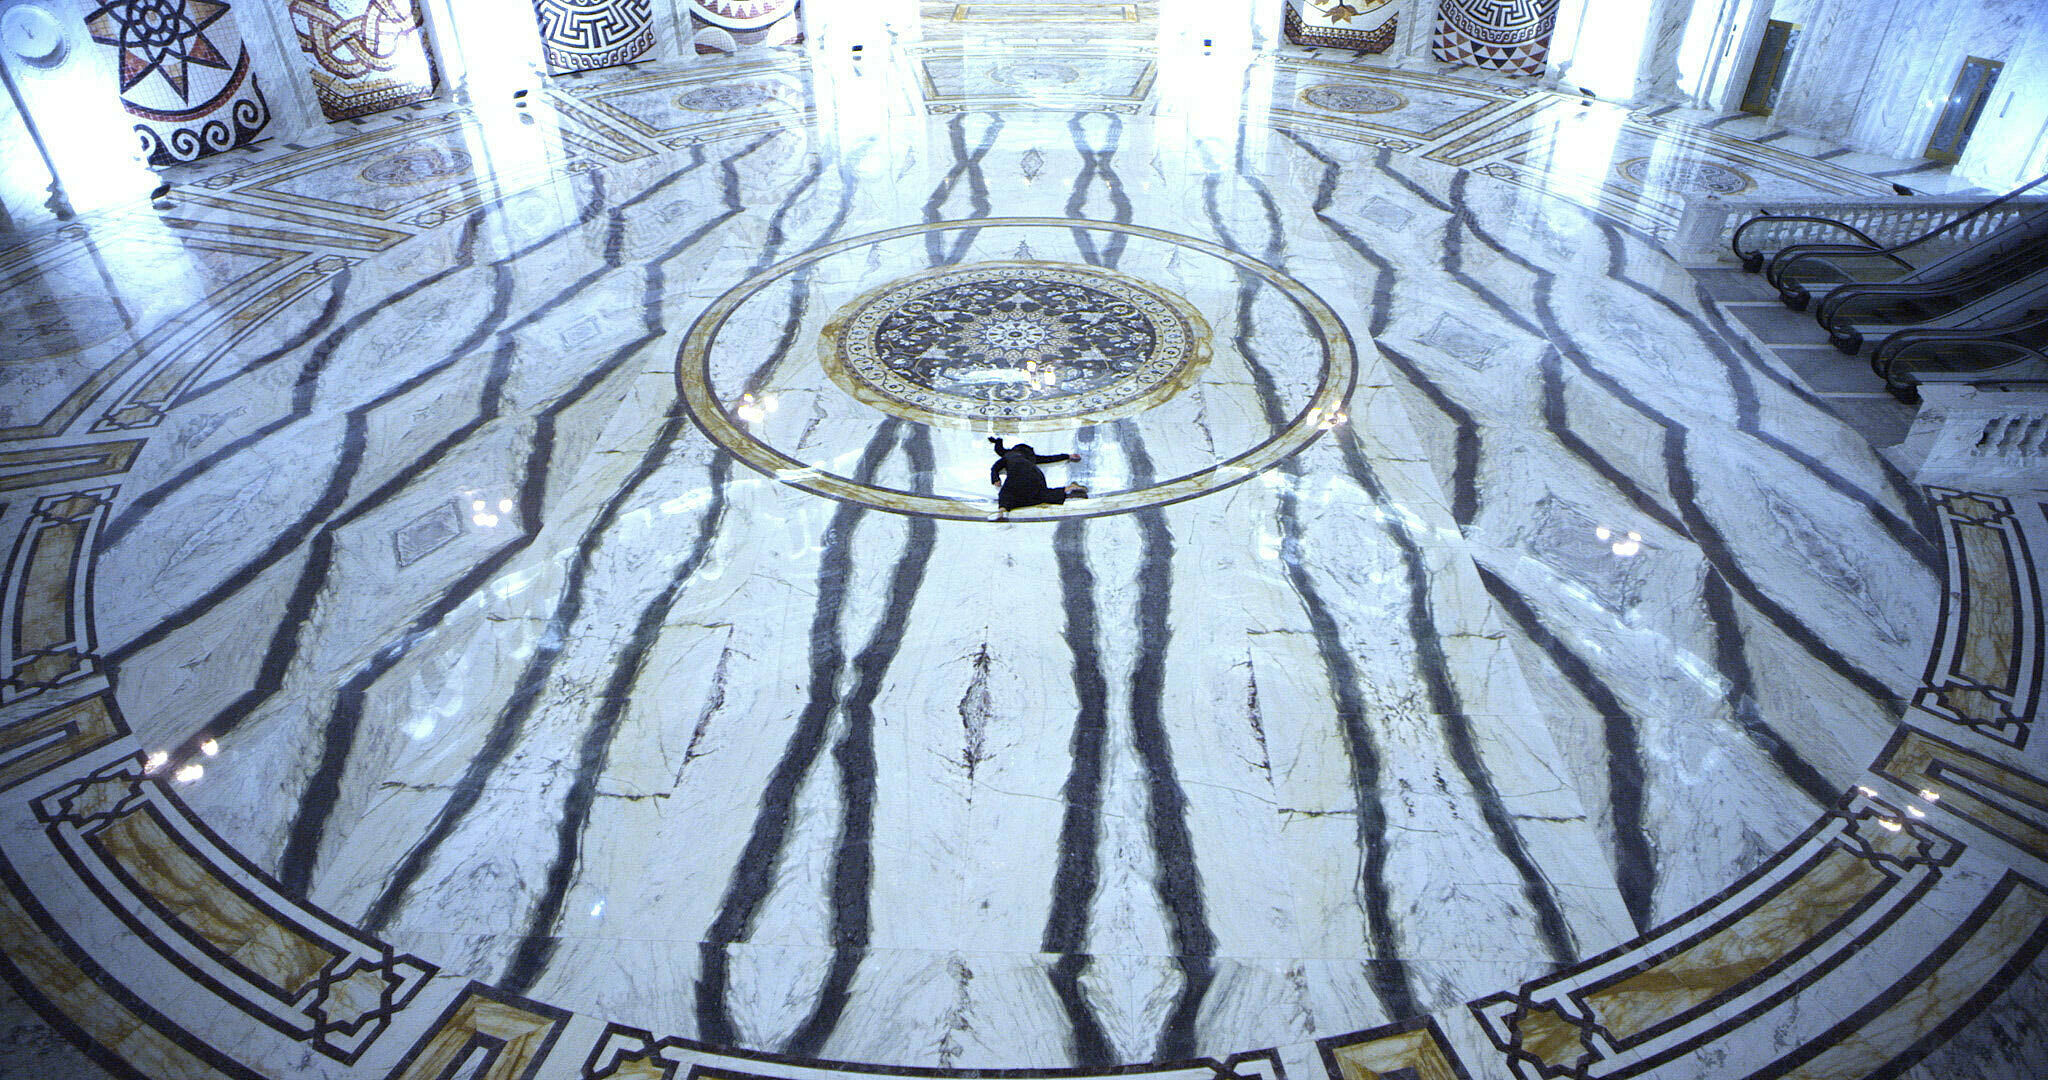 A woman in black sprawled on a marble floor